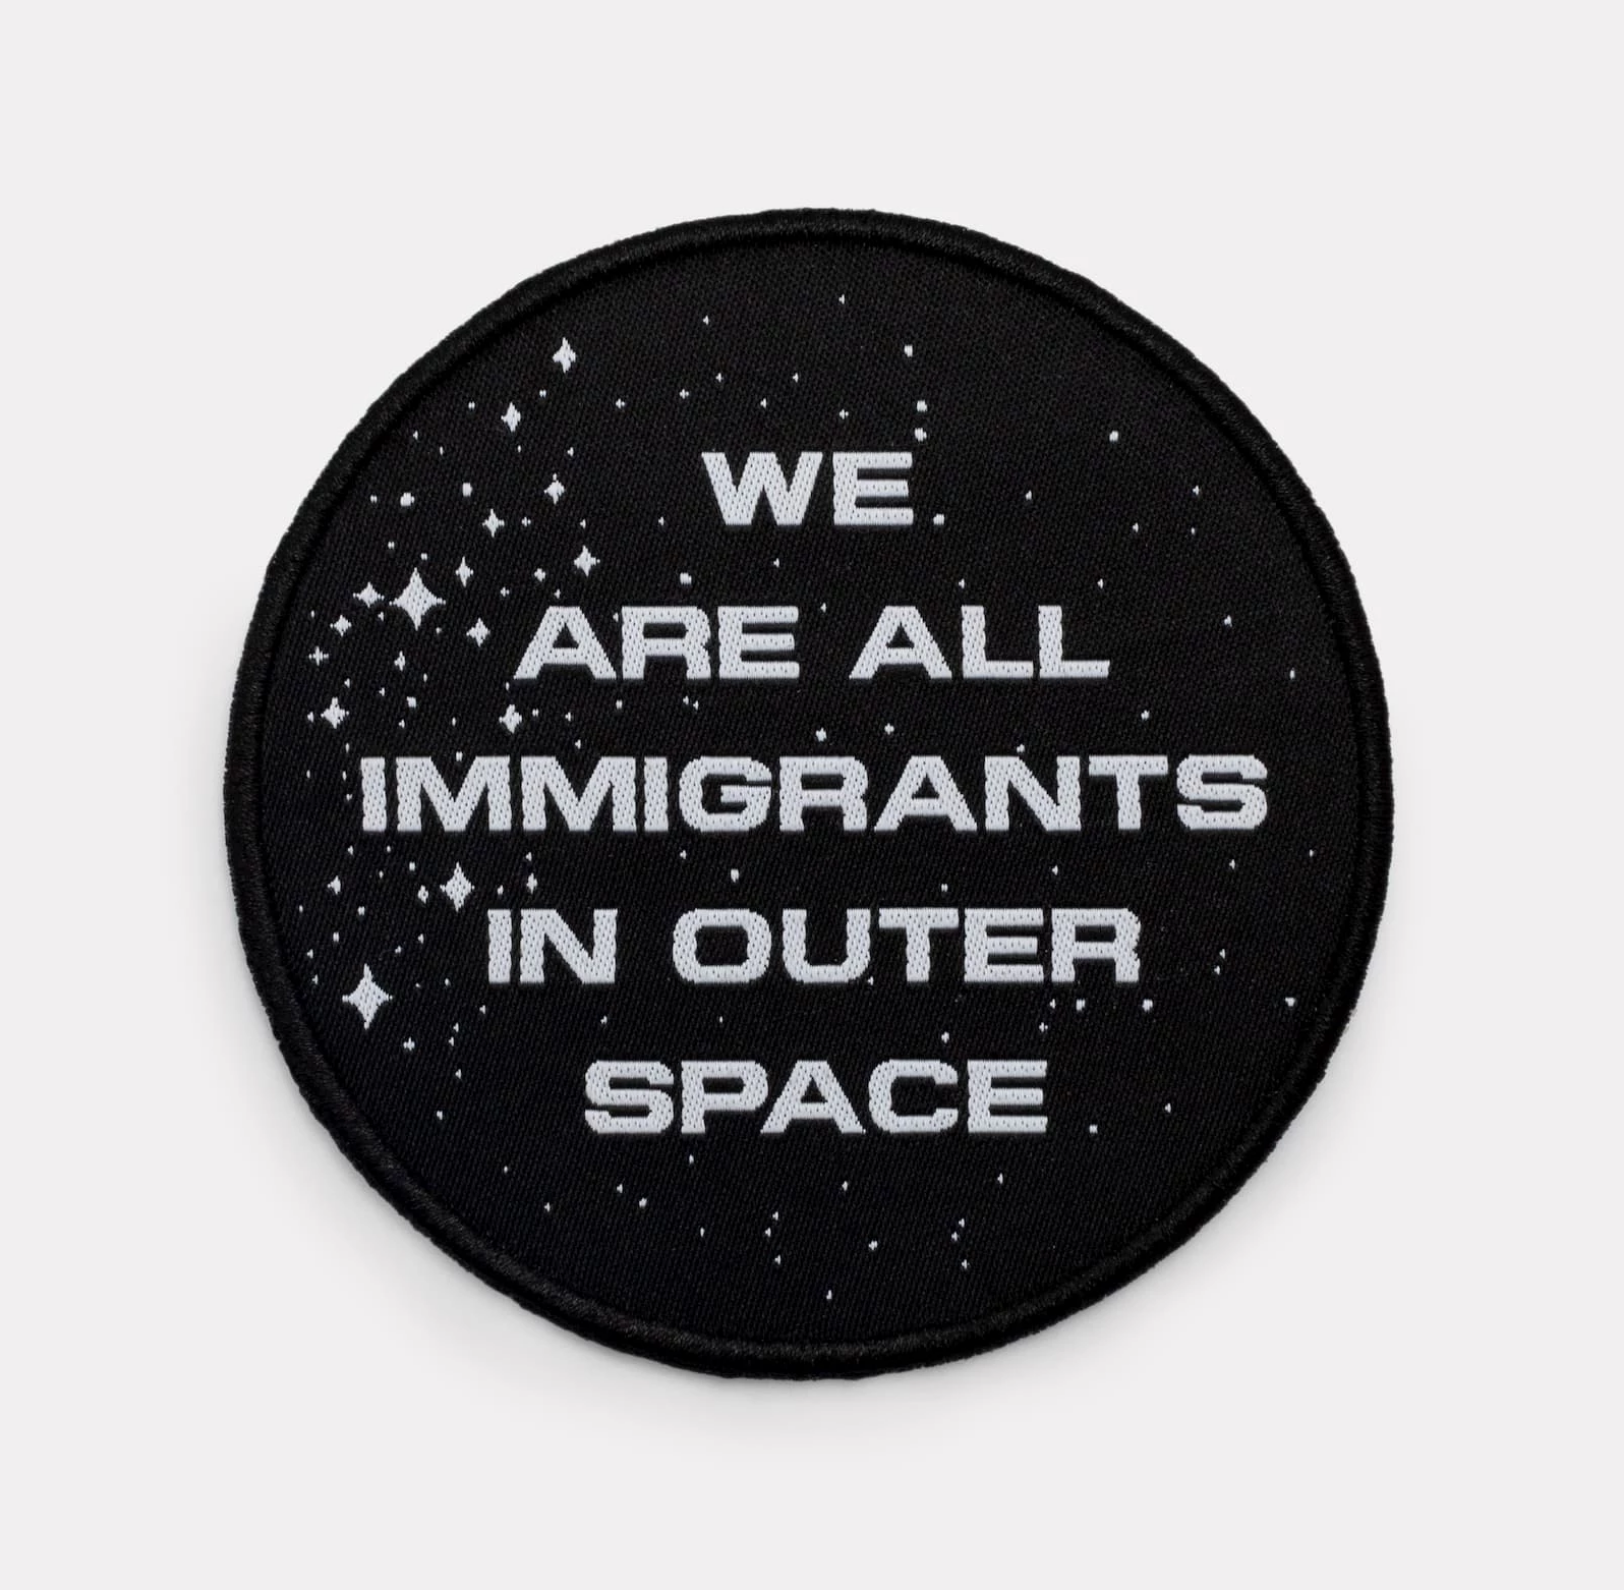 Space Immigrants Patch